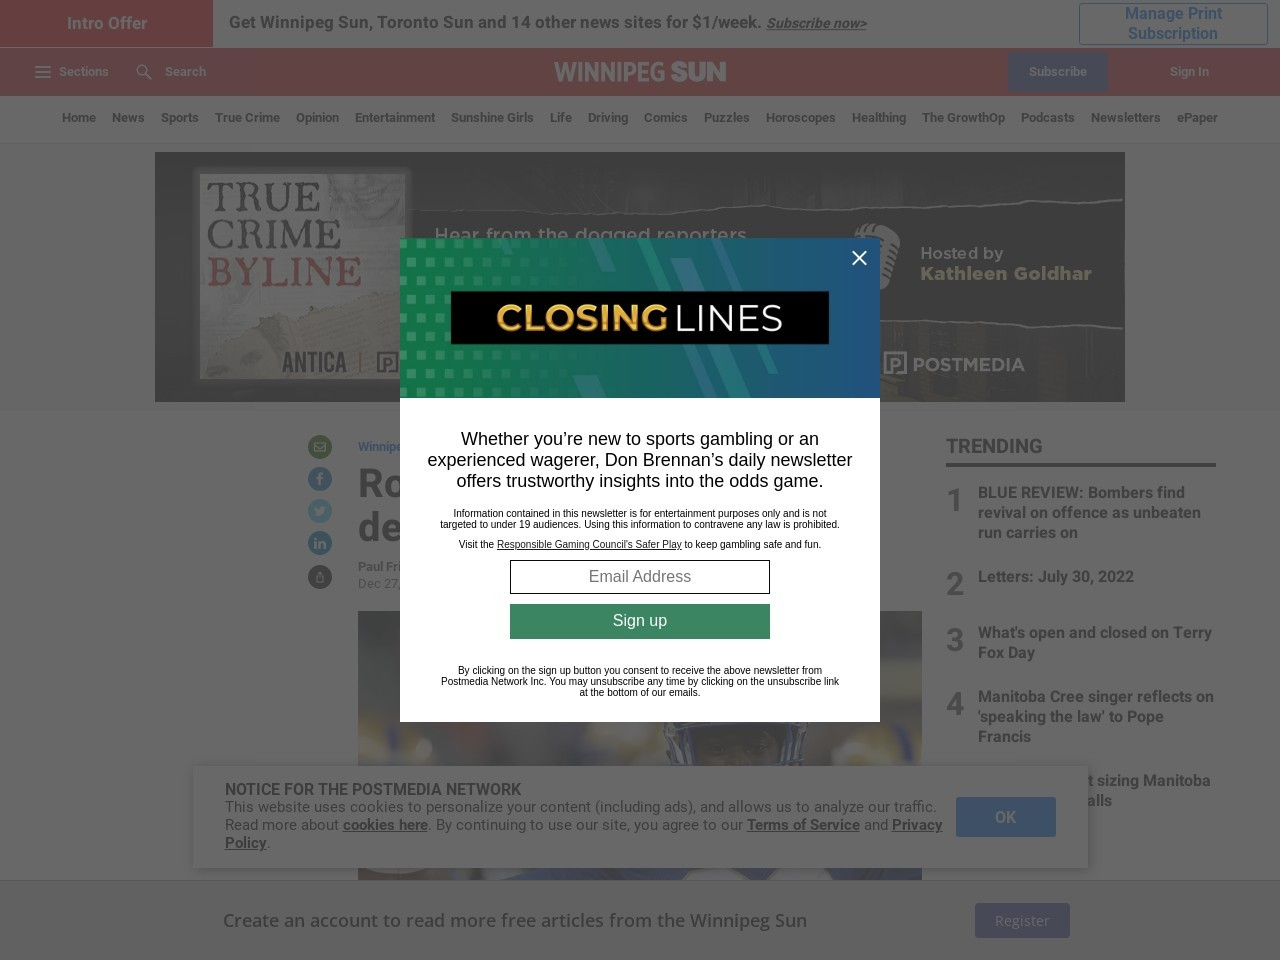 Rose bolts Bombers for NFL deal with Bengals